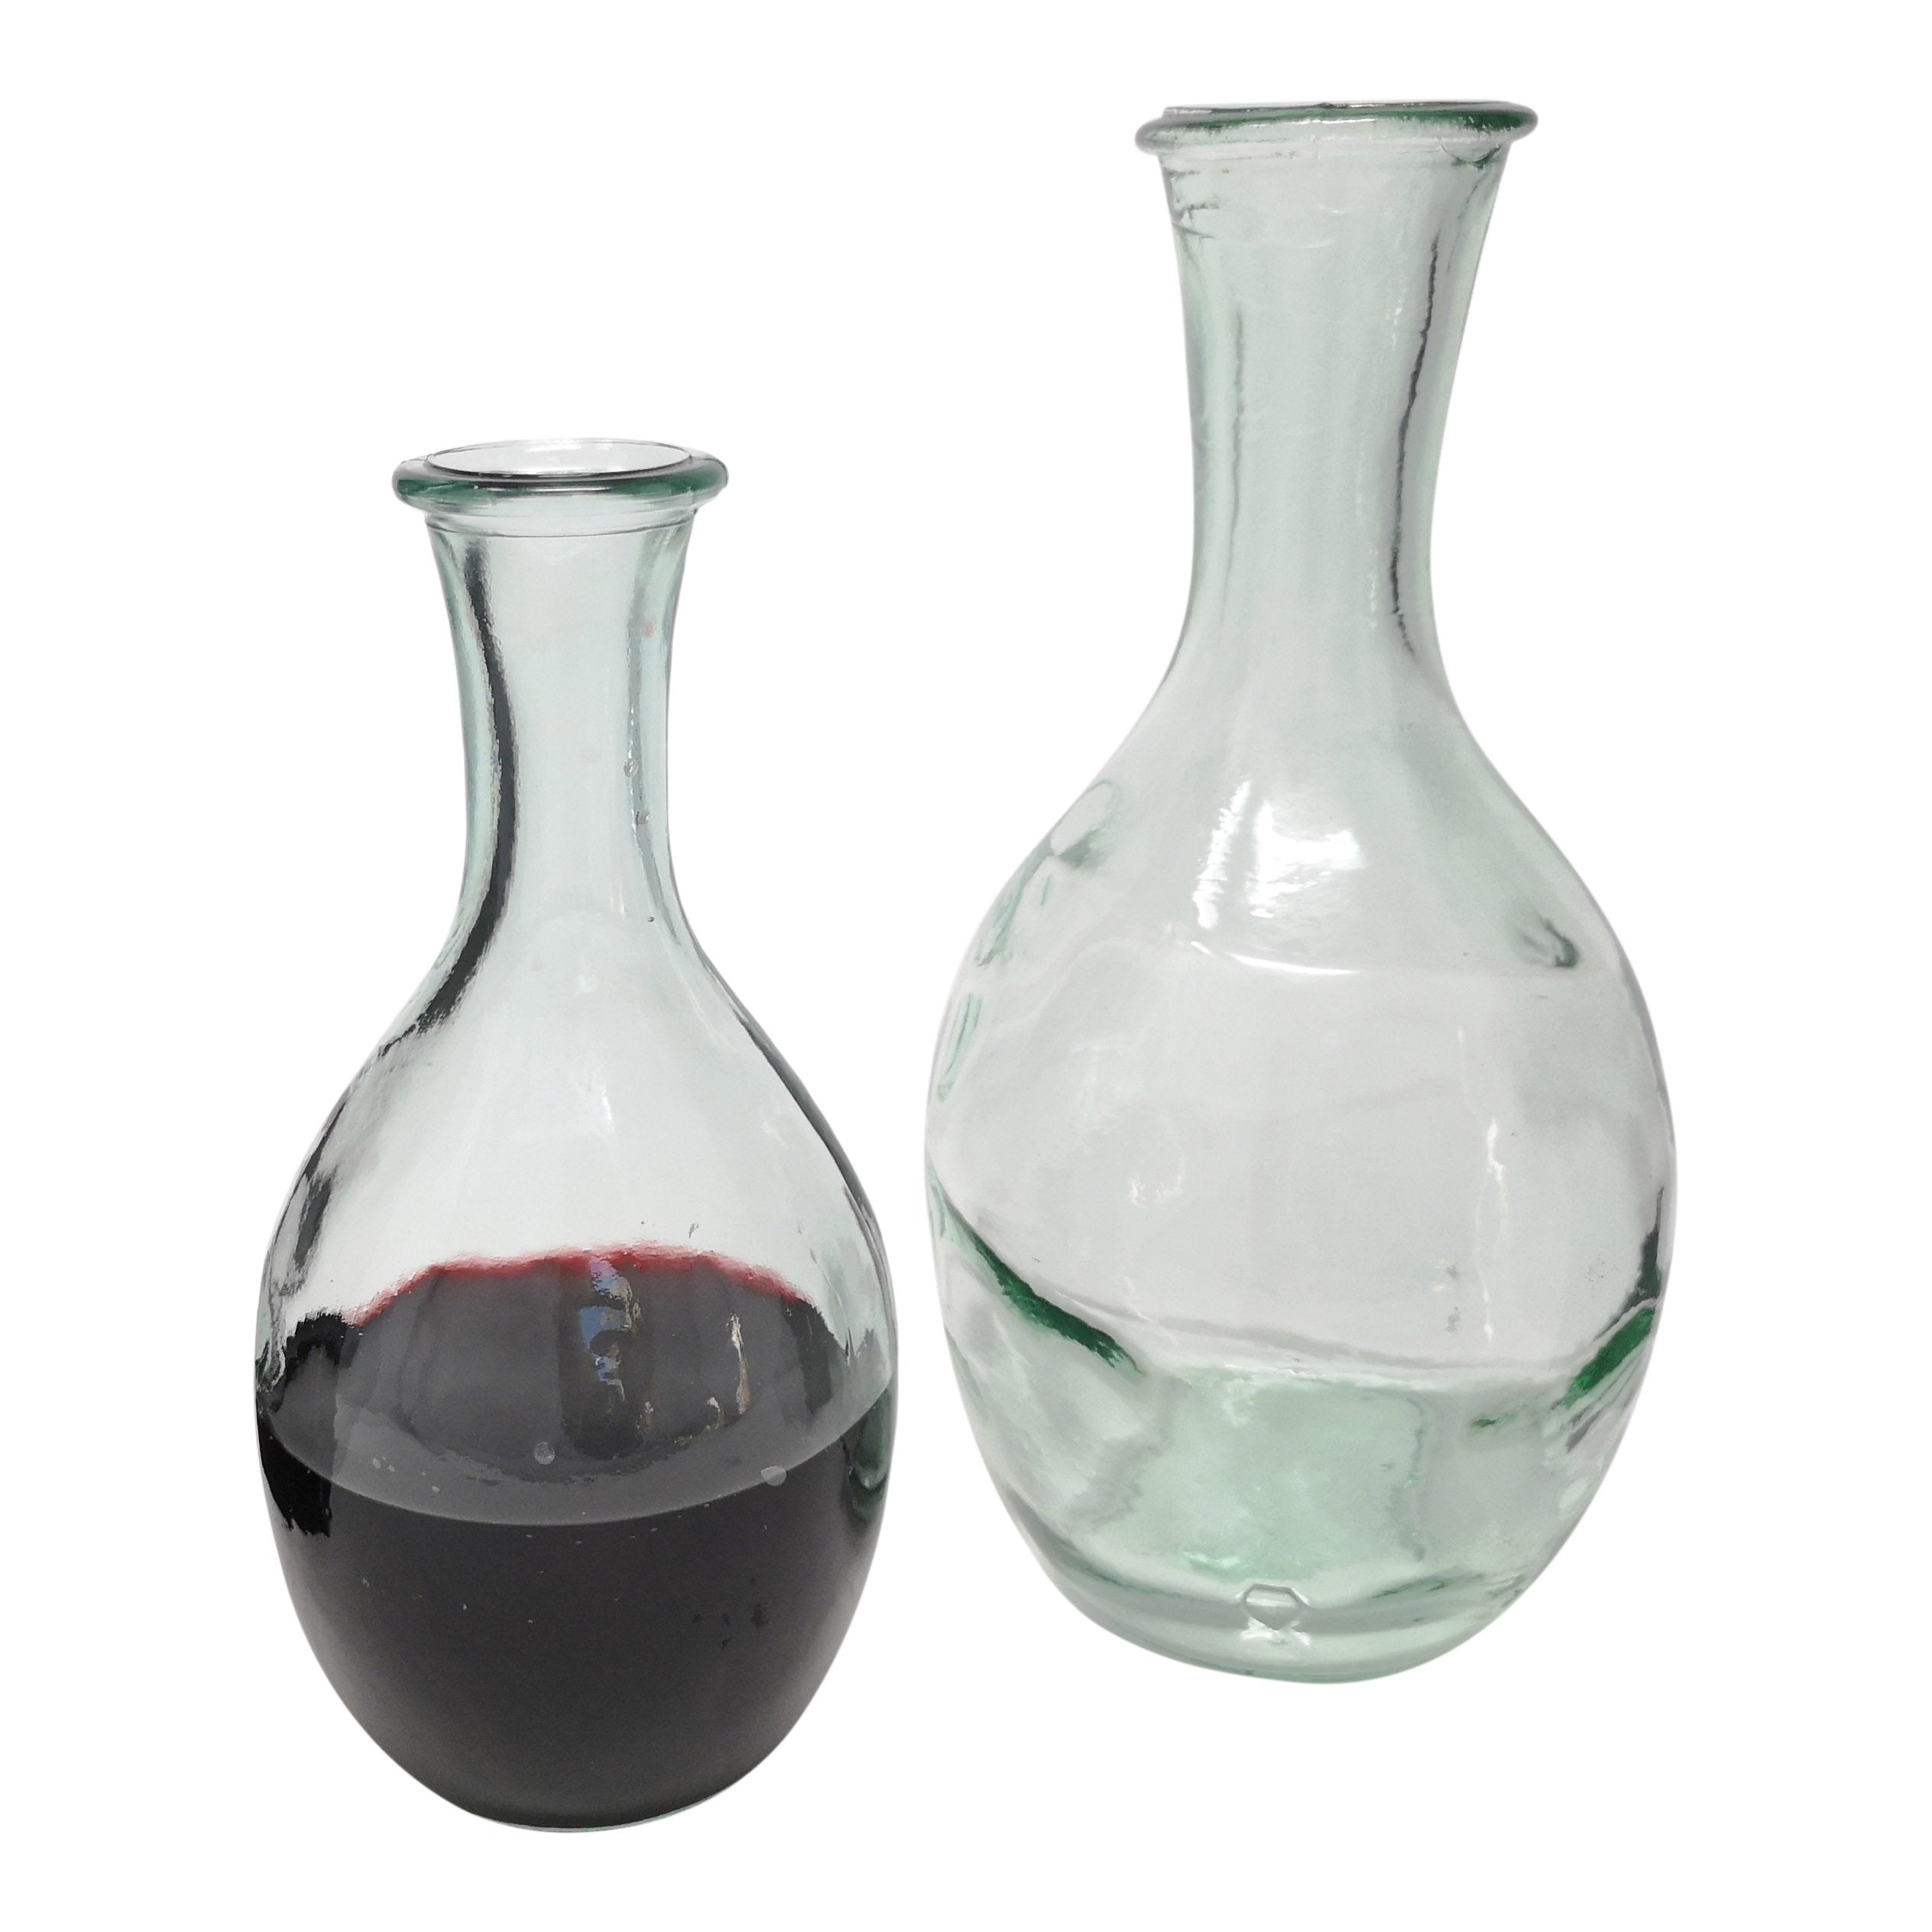 1 litre Recycled Glass Carafe